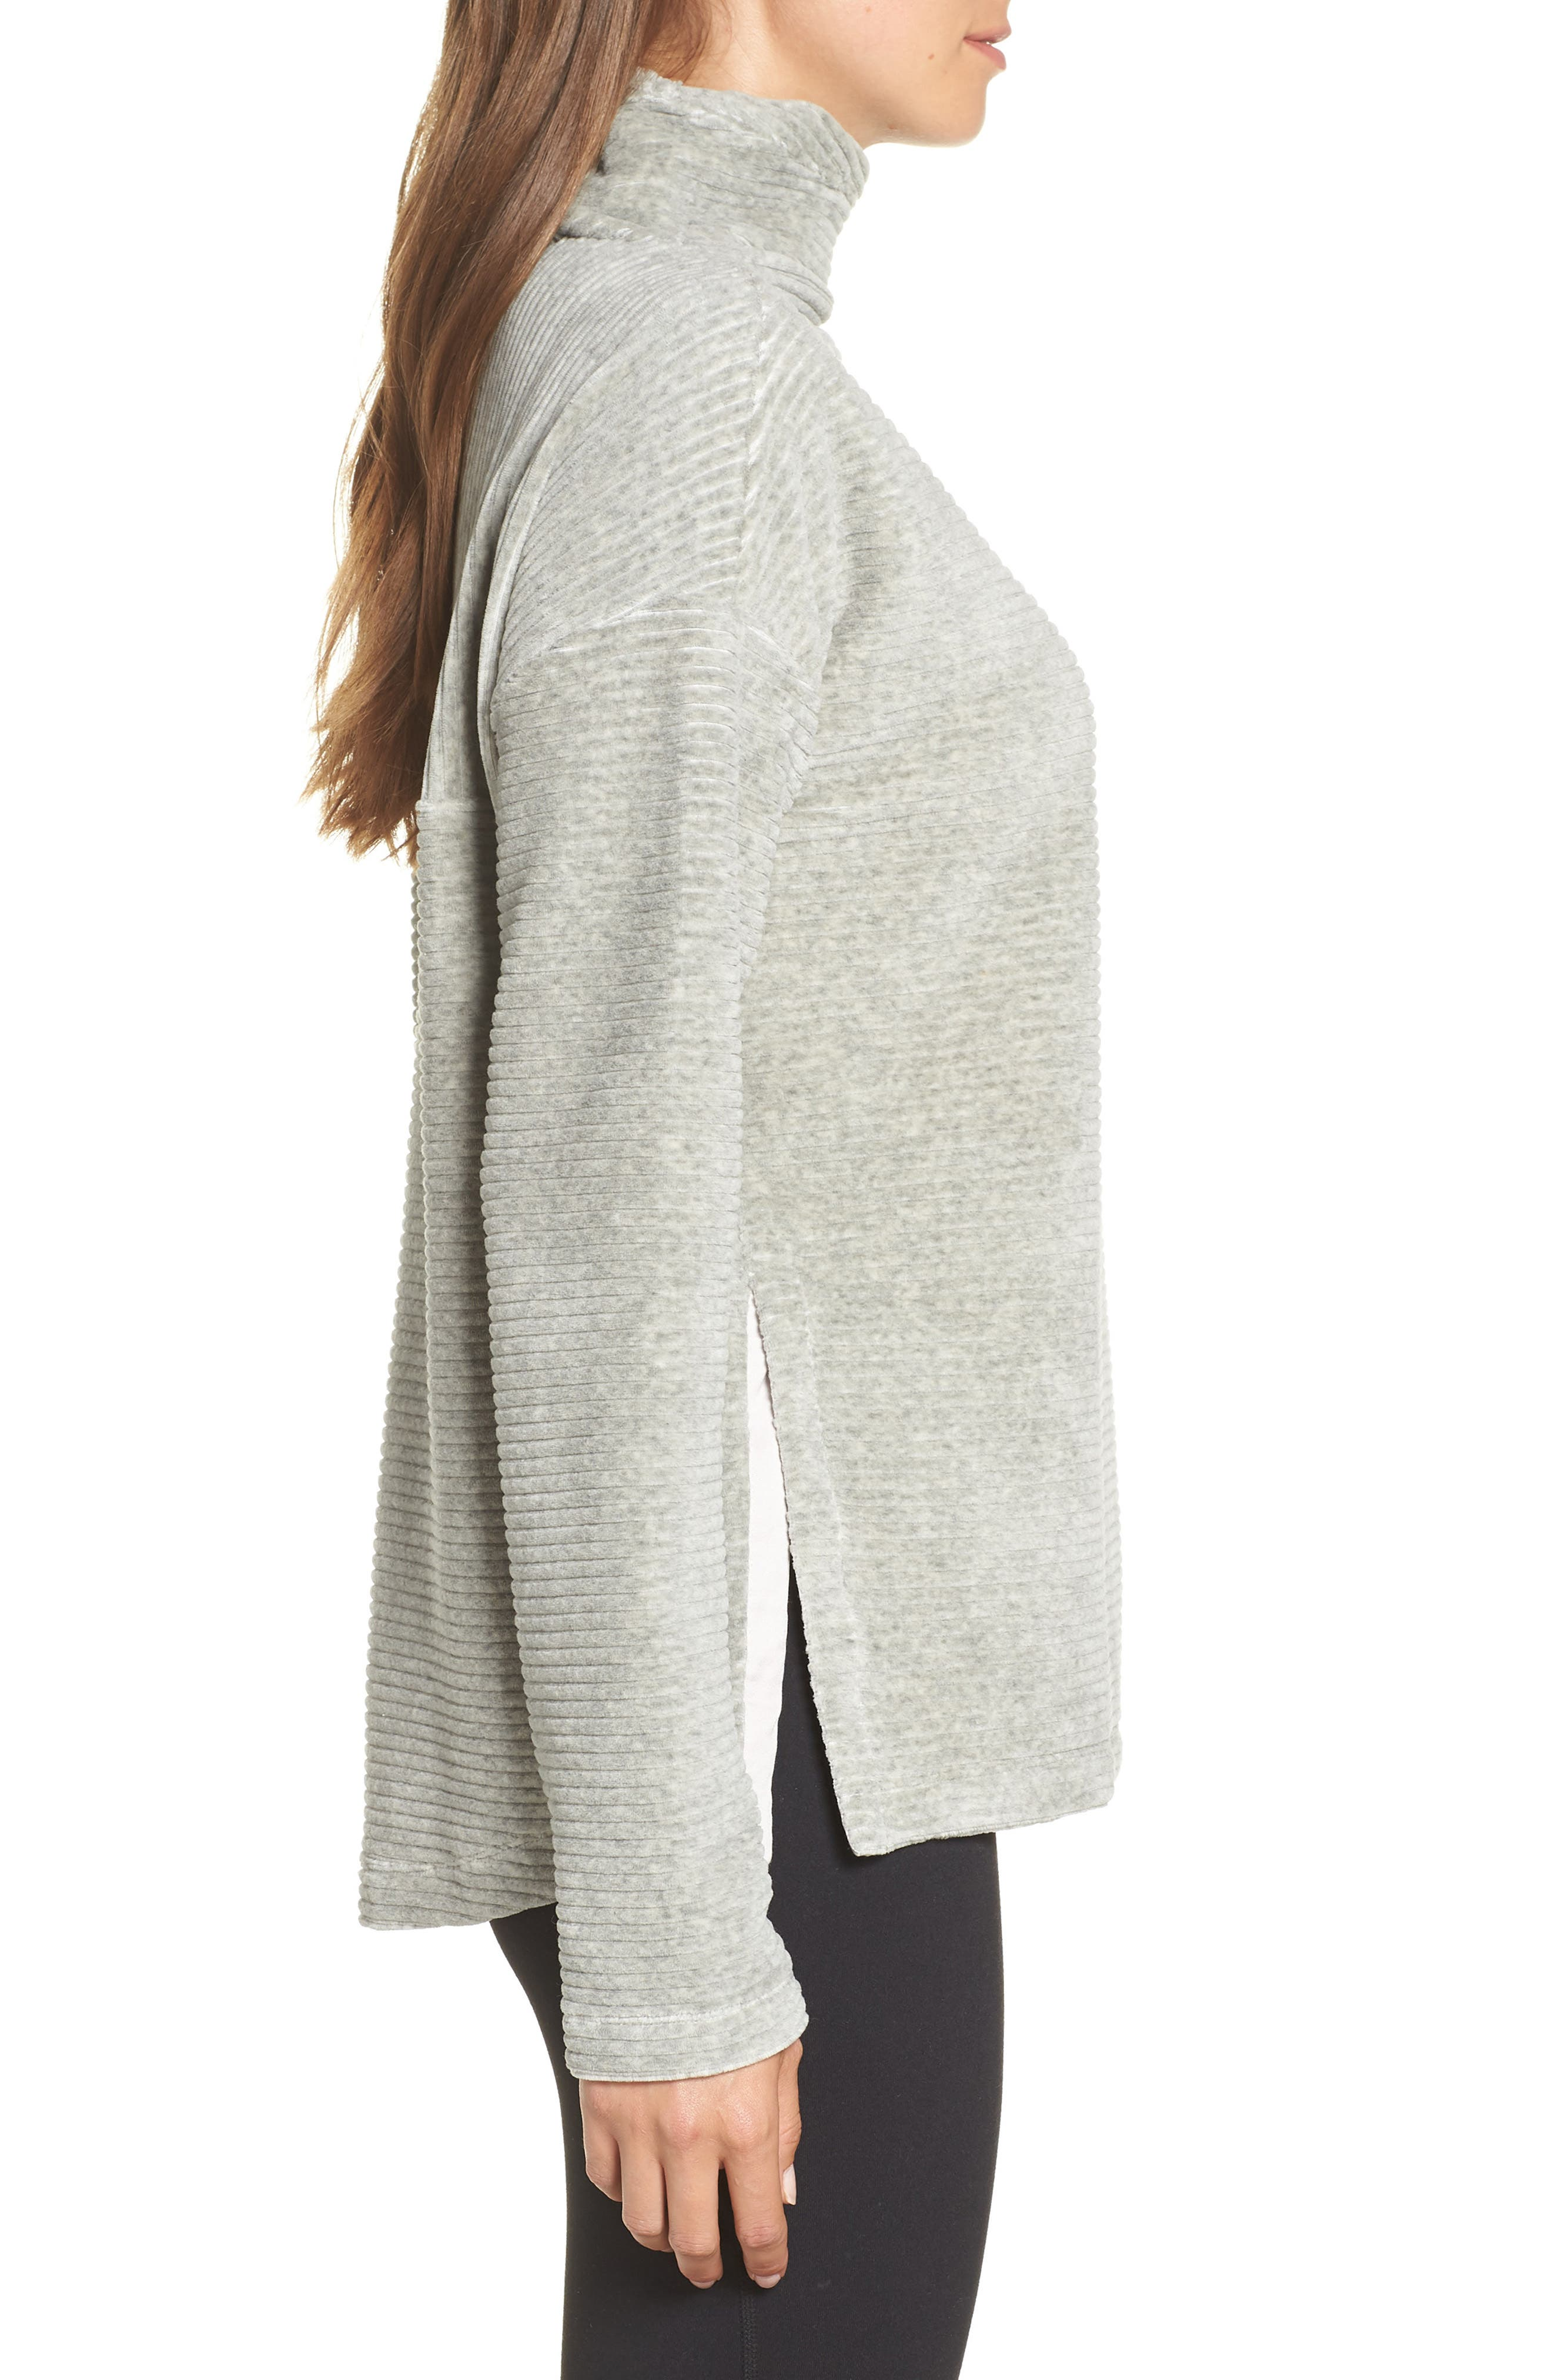 Bright Side Pullover,                             Alternate thumbnail 3, color,                             GREY CRYSTAL